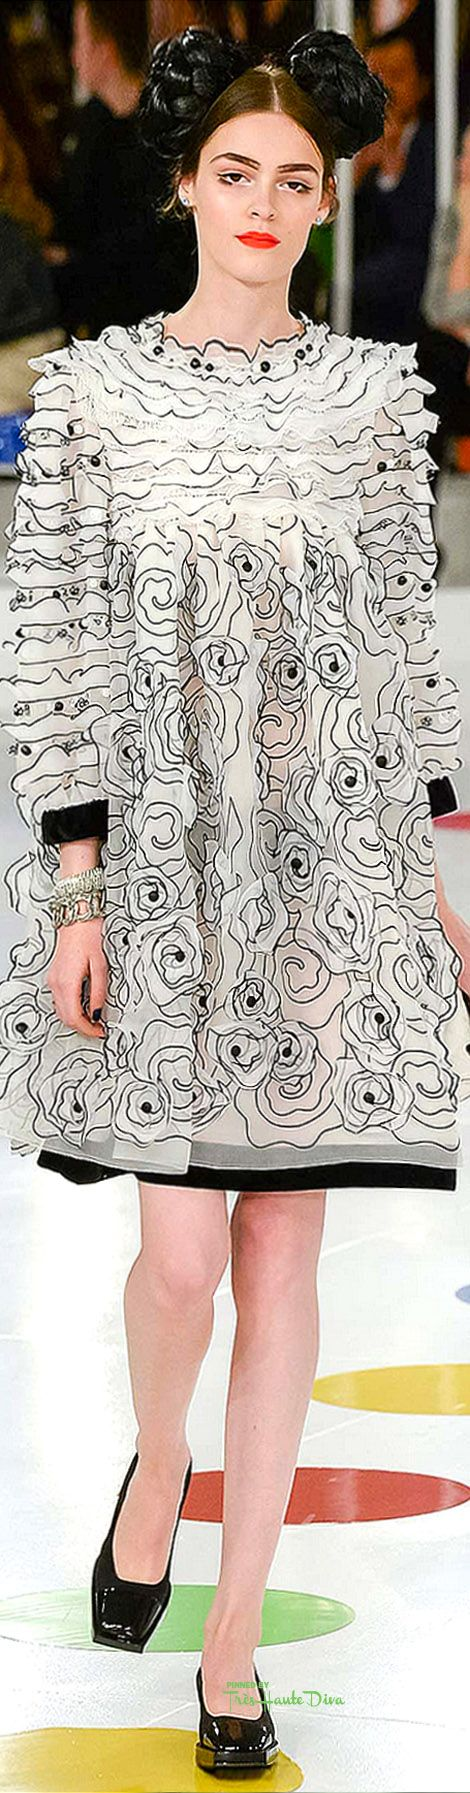 Chanel Cruise 2016 Seoul ♔ Très Haute Diva ♔ ... As if a drawing came alive...